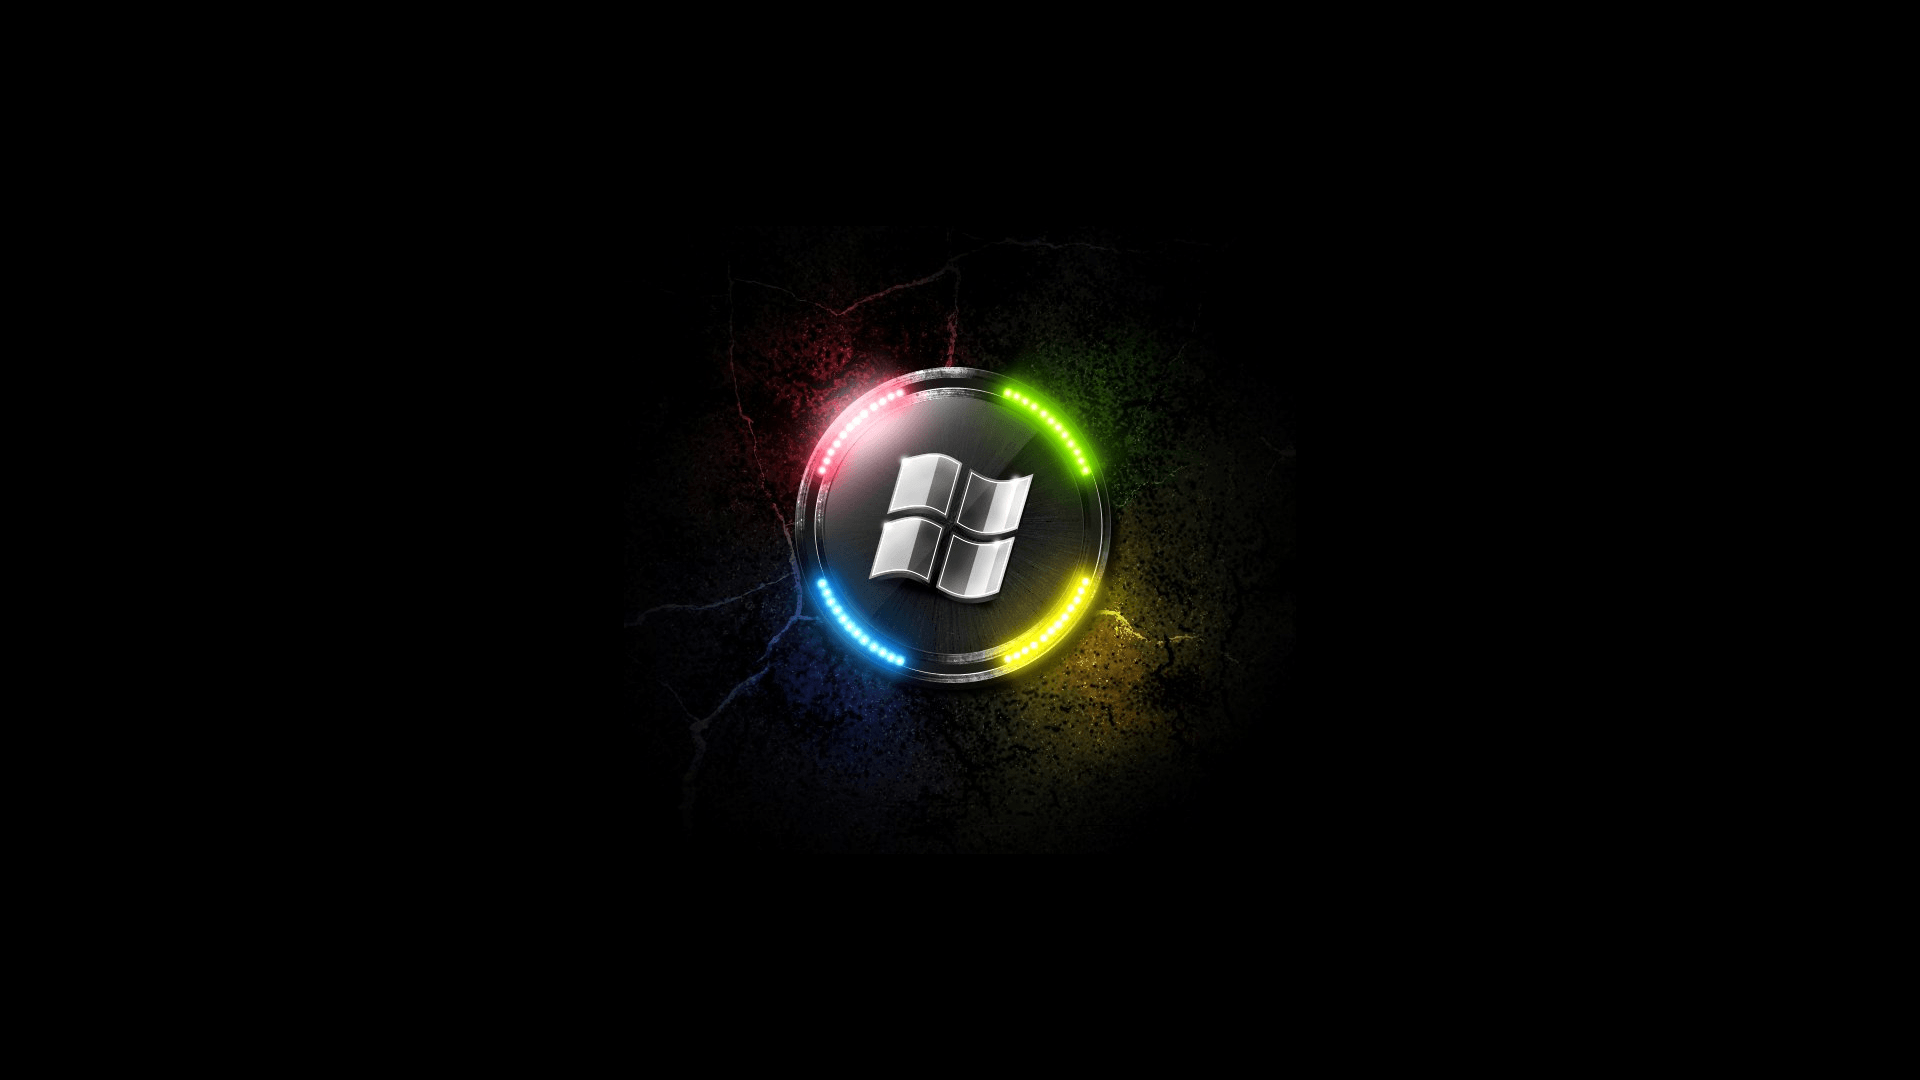 Windows Logo wallpapers